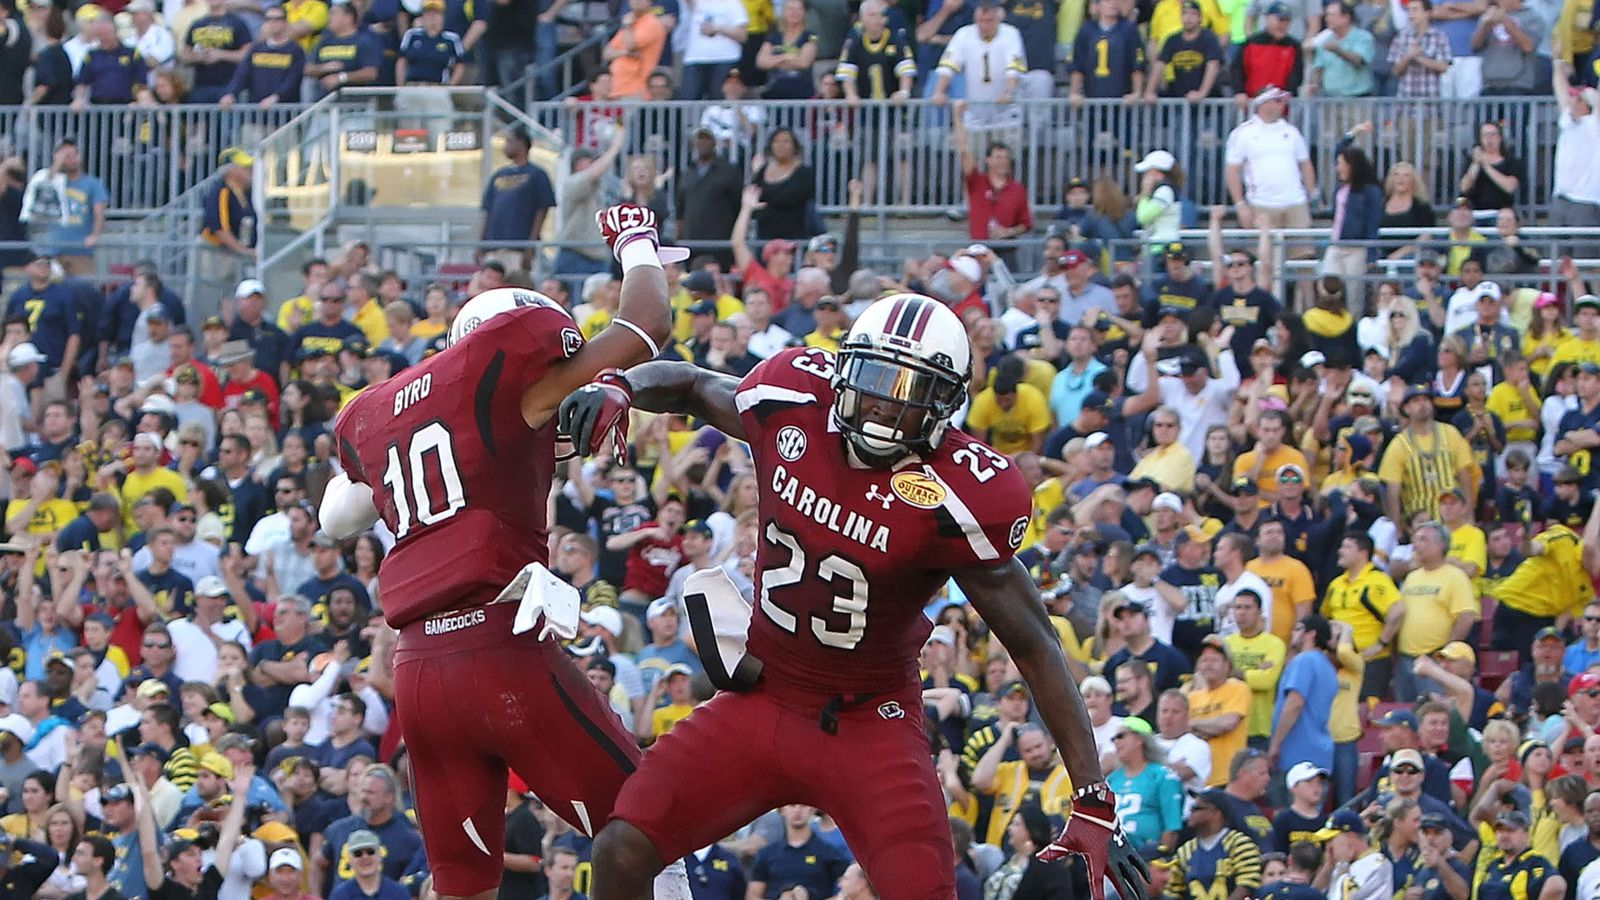 South Carolina Football 2013 Opponent Previews: Coastal ...